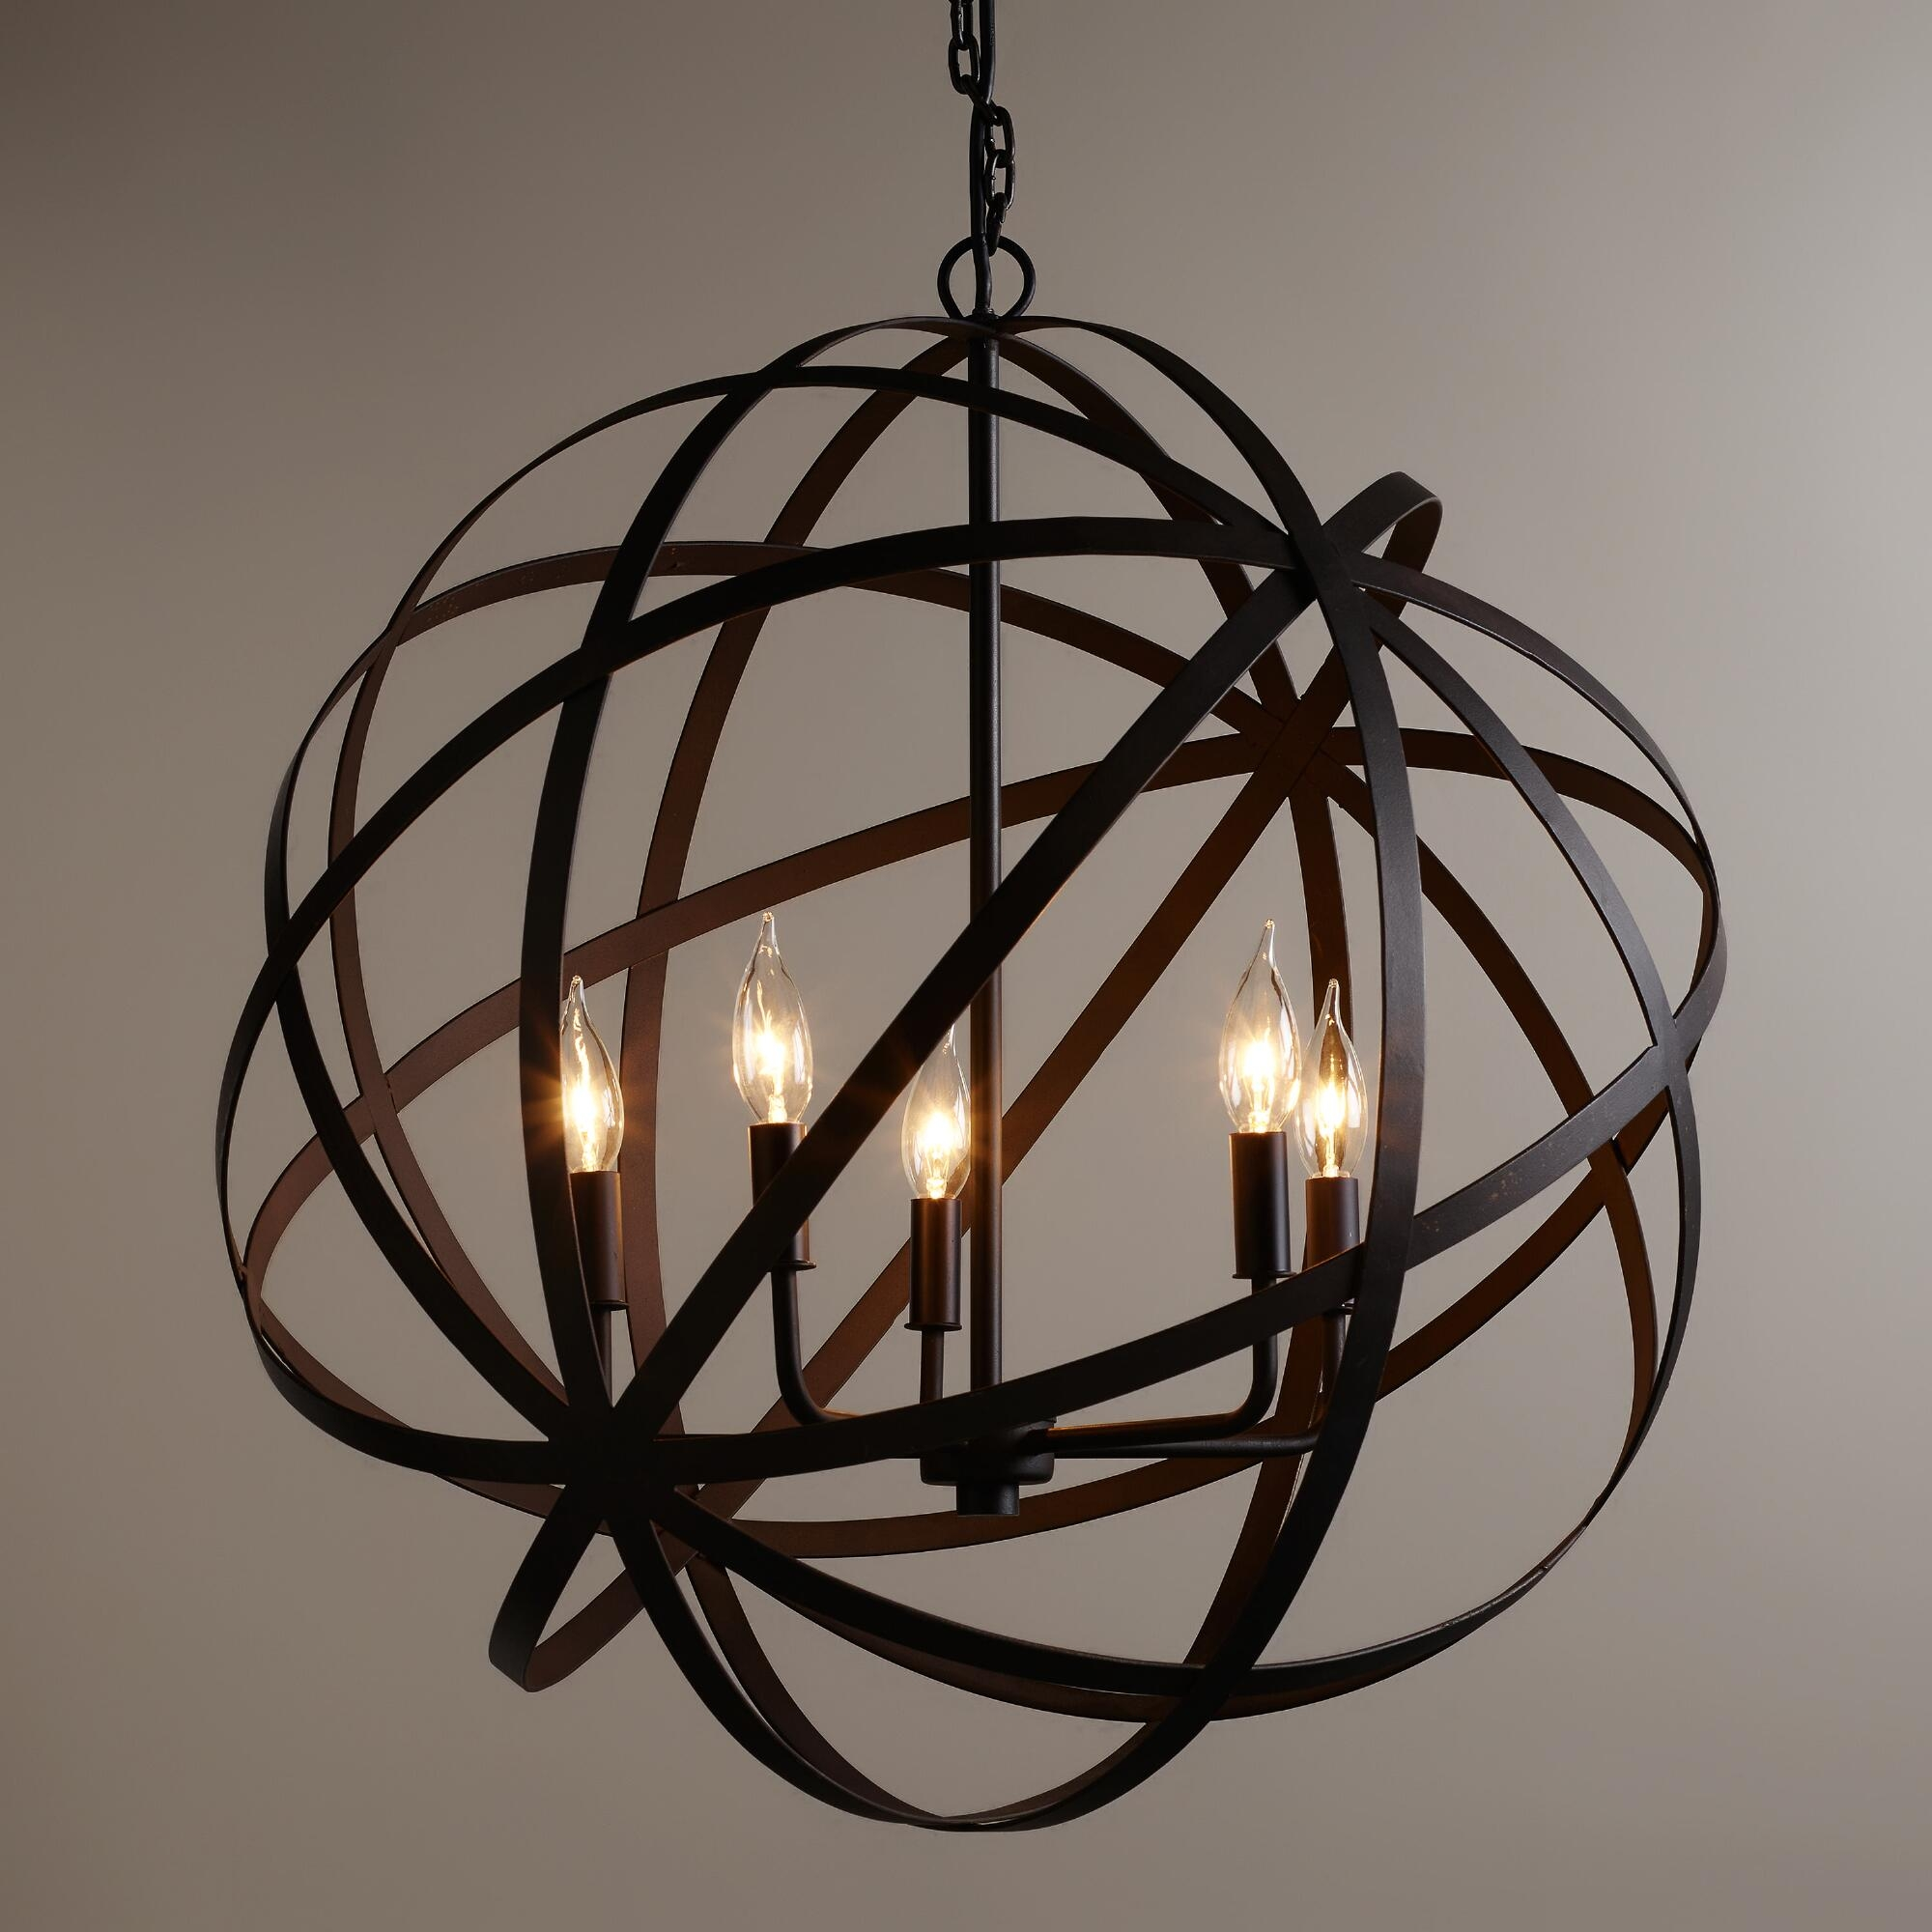 Extraordinary Large Iron Chandelier For Home Remodel Ideas With With Regard To Large Iron Chandelier (#6 of 12)